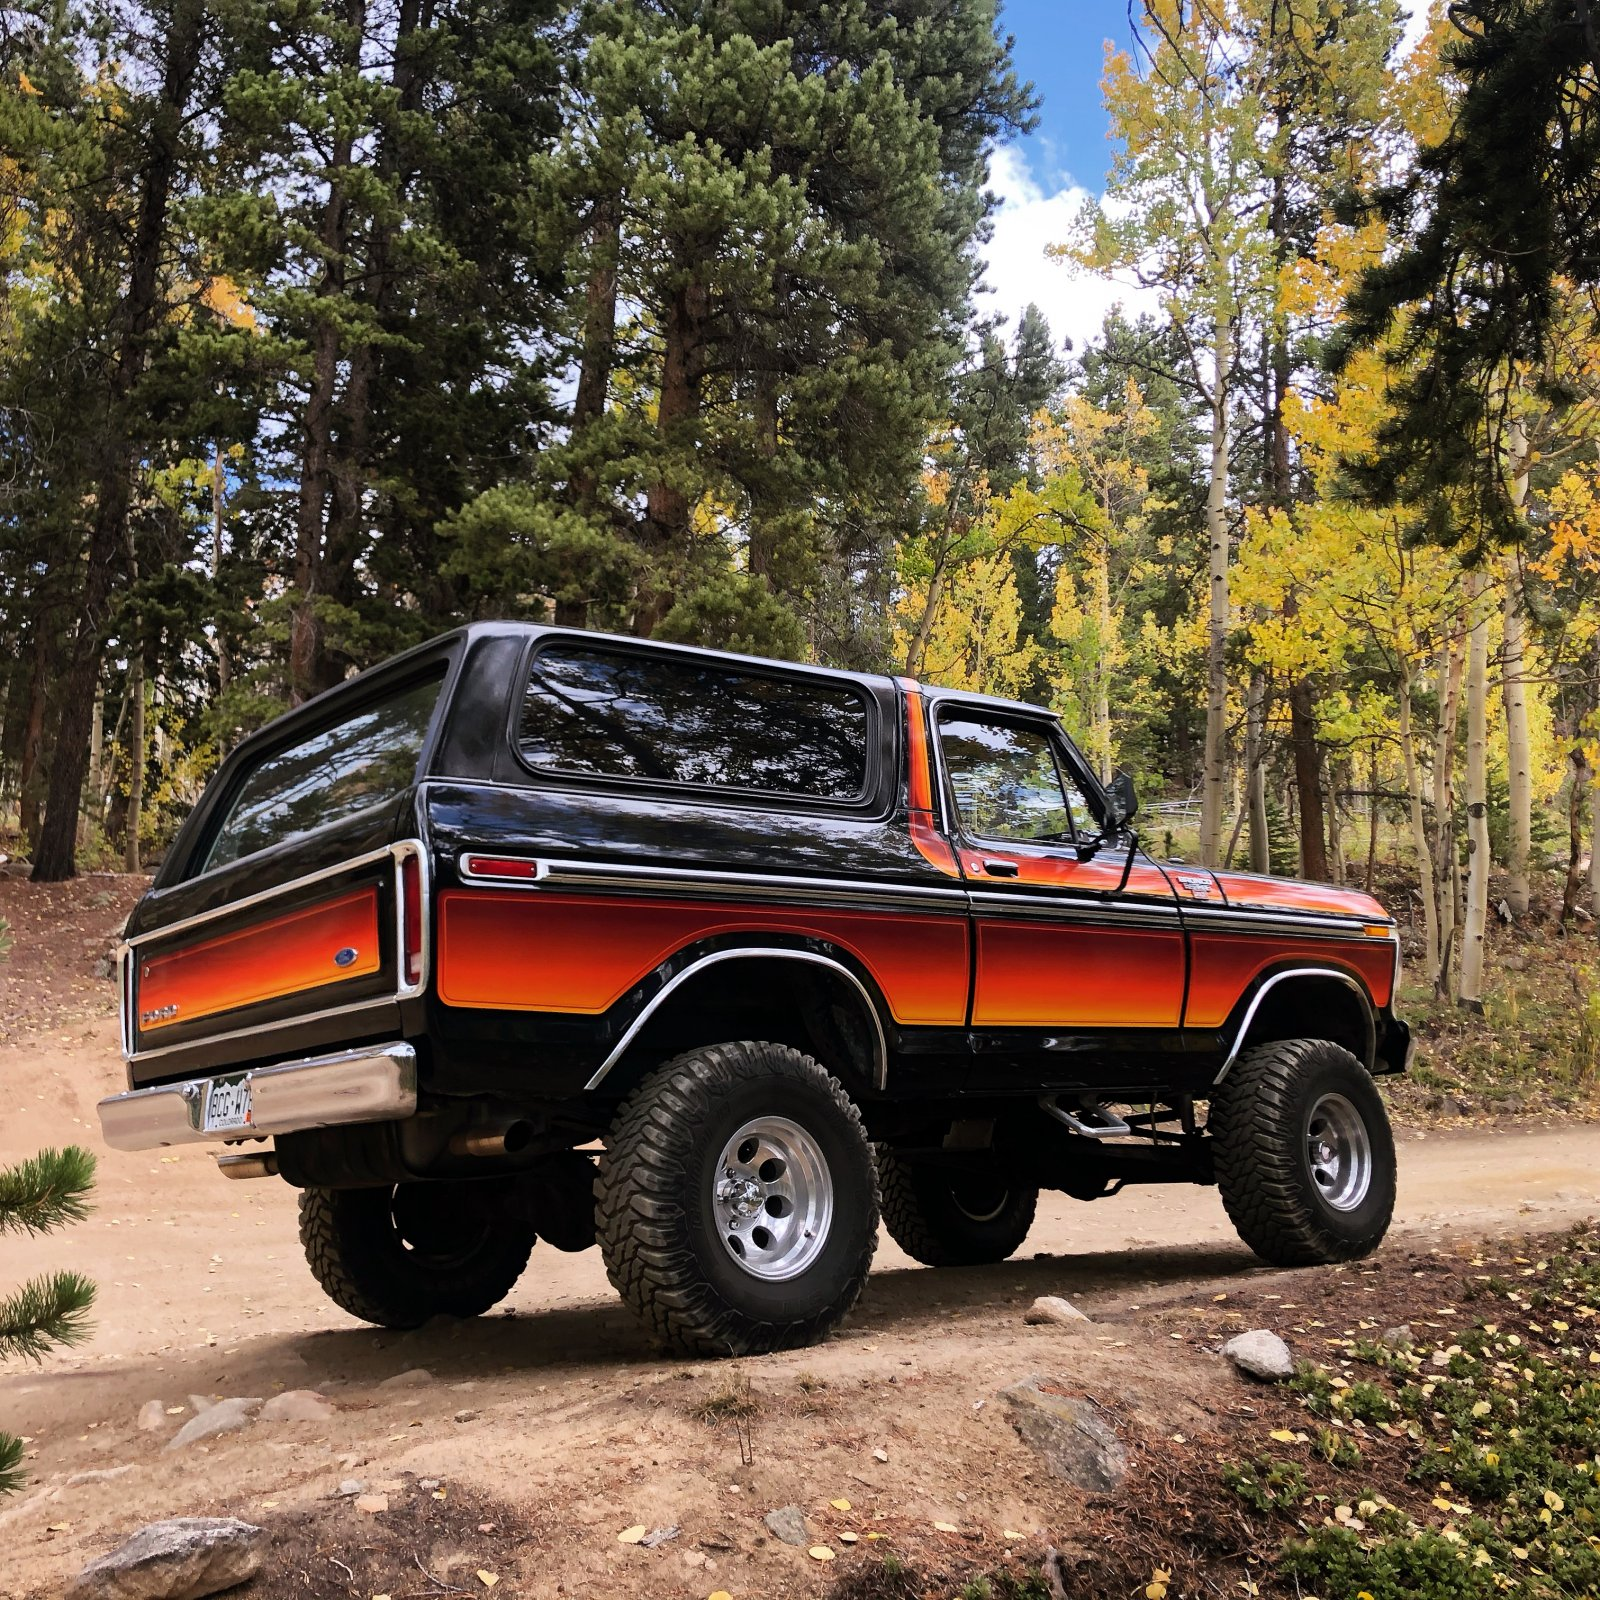 1979 Ford Bronco Ranger XLT - For Sale 8.JPG